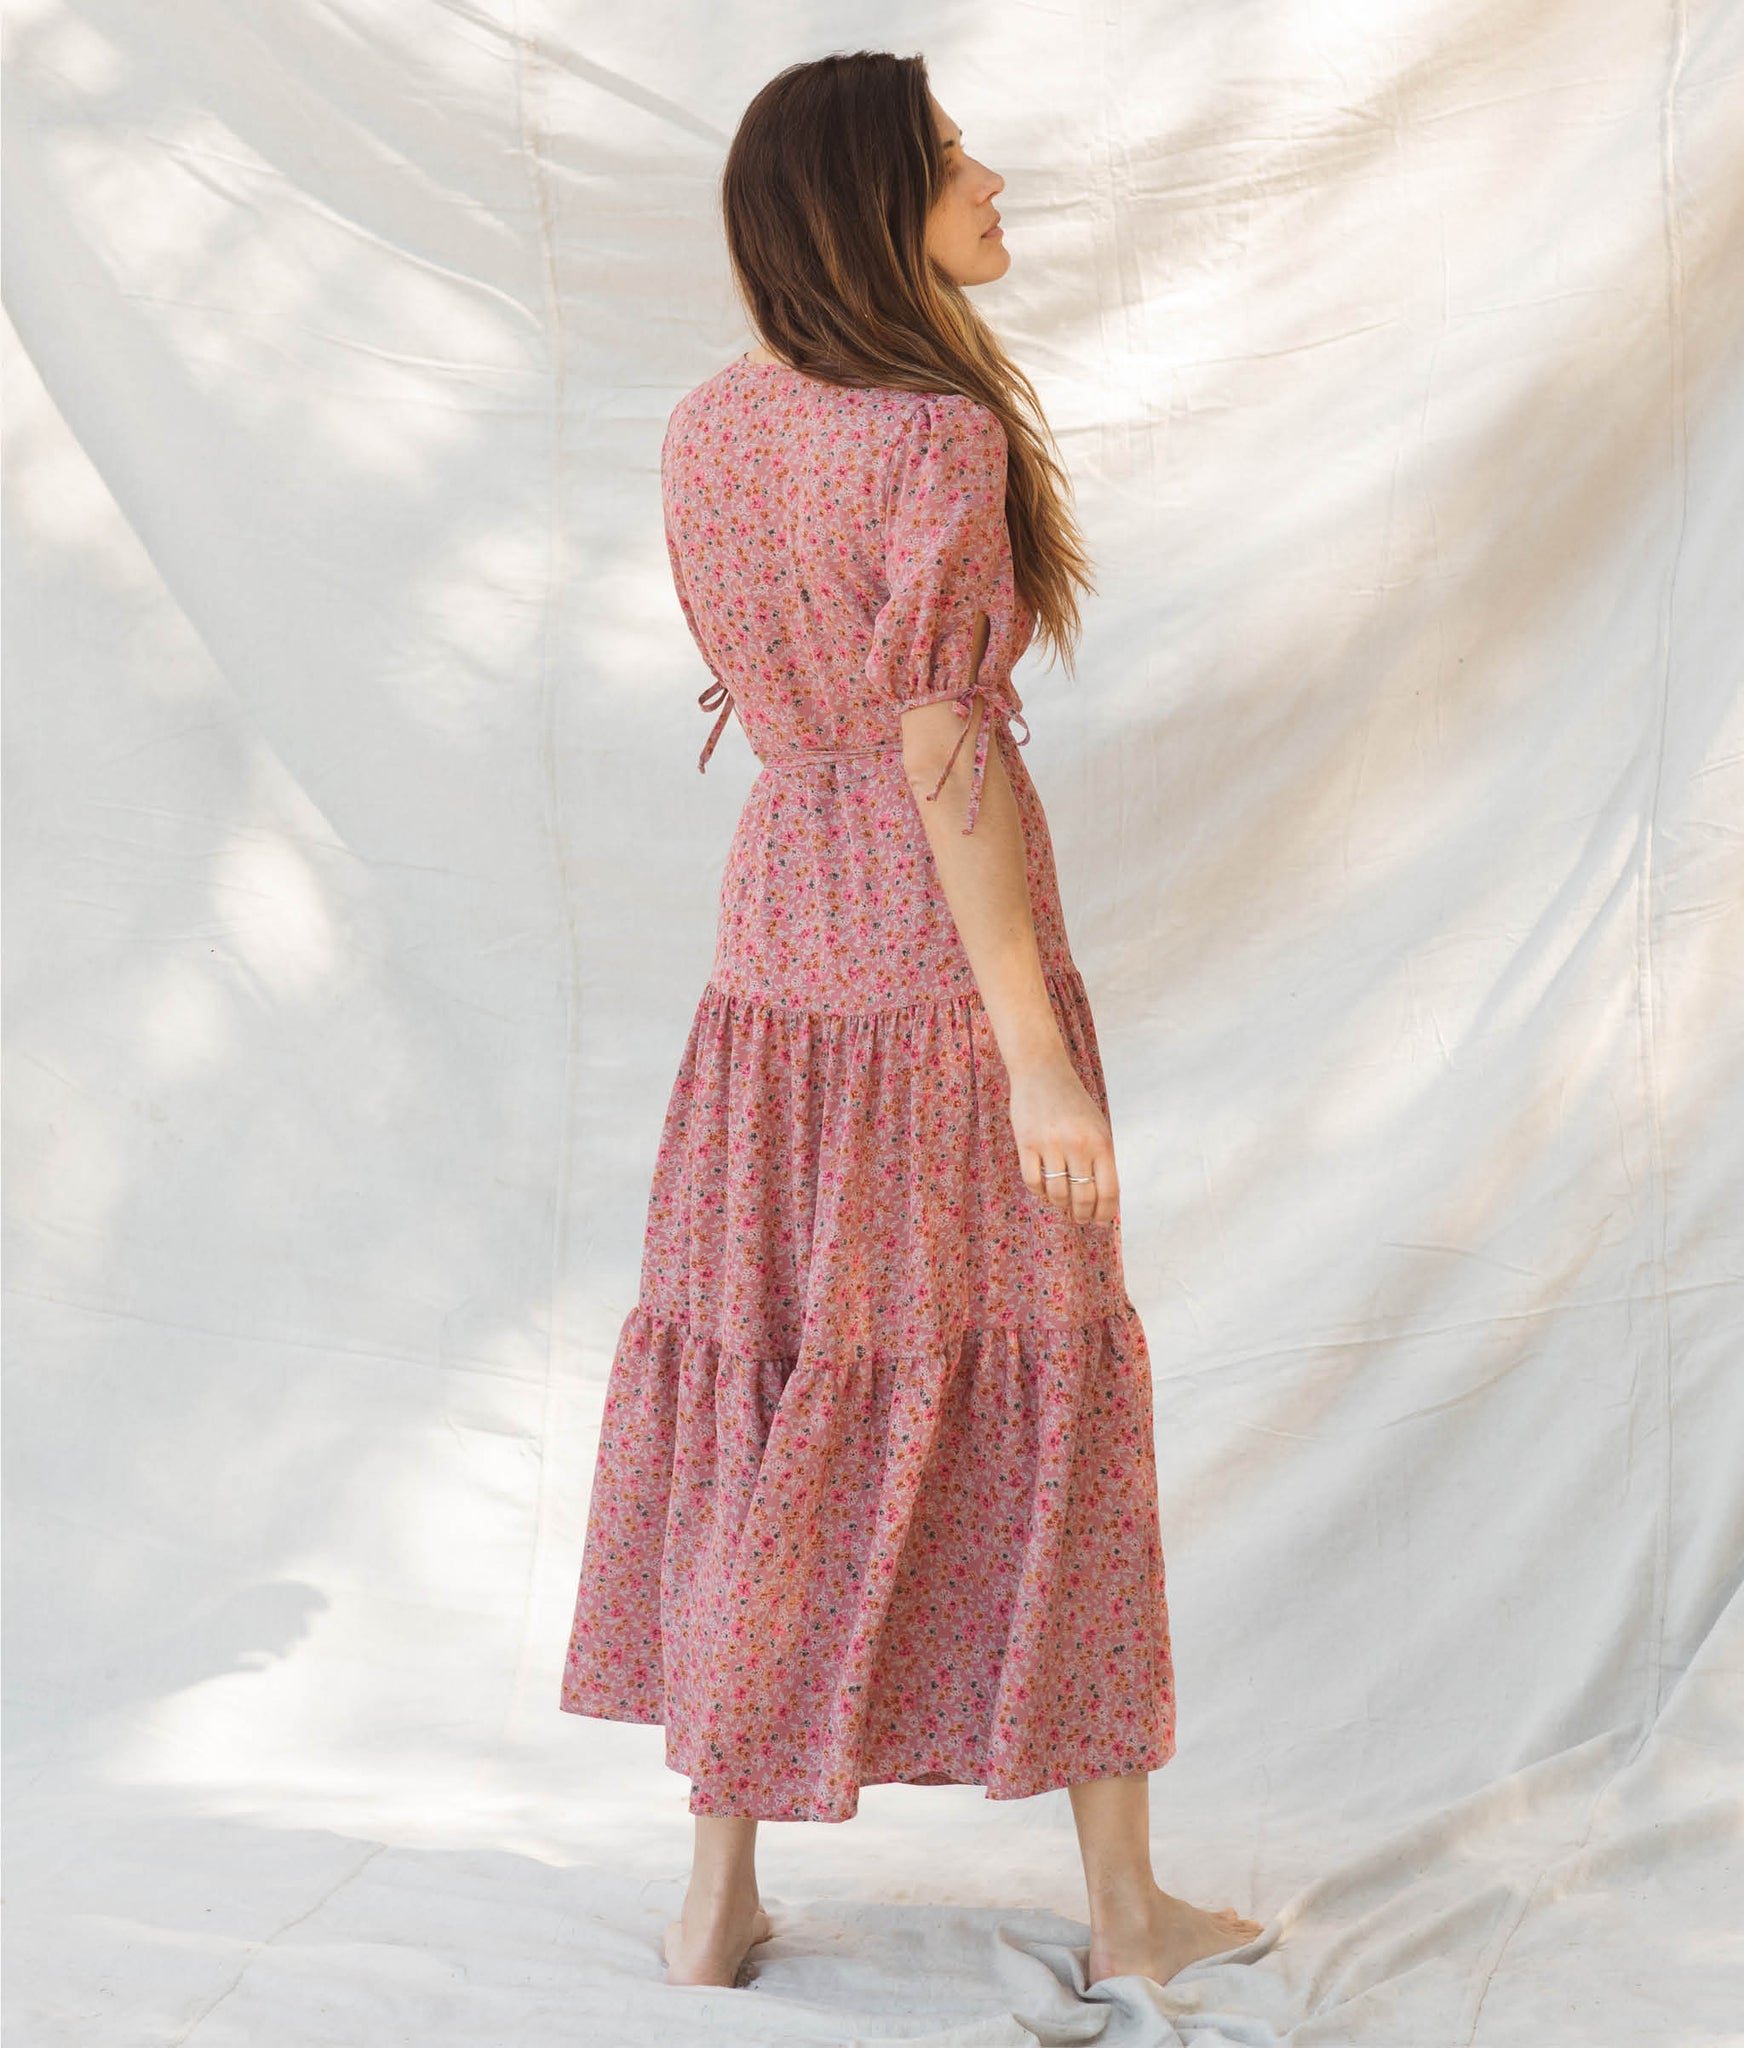 The Augusta Dress | Rosebush (3-of-a-Kind)